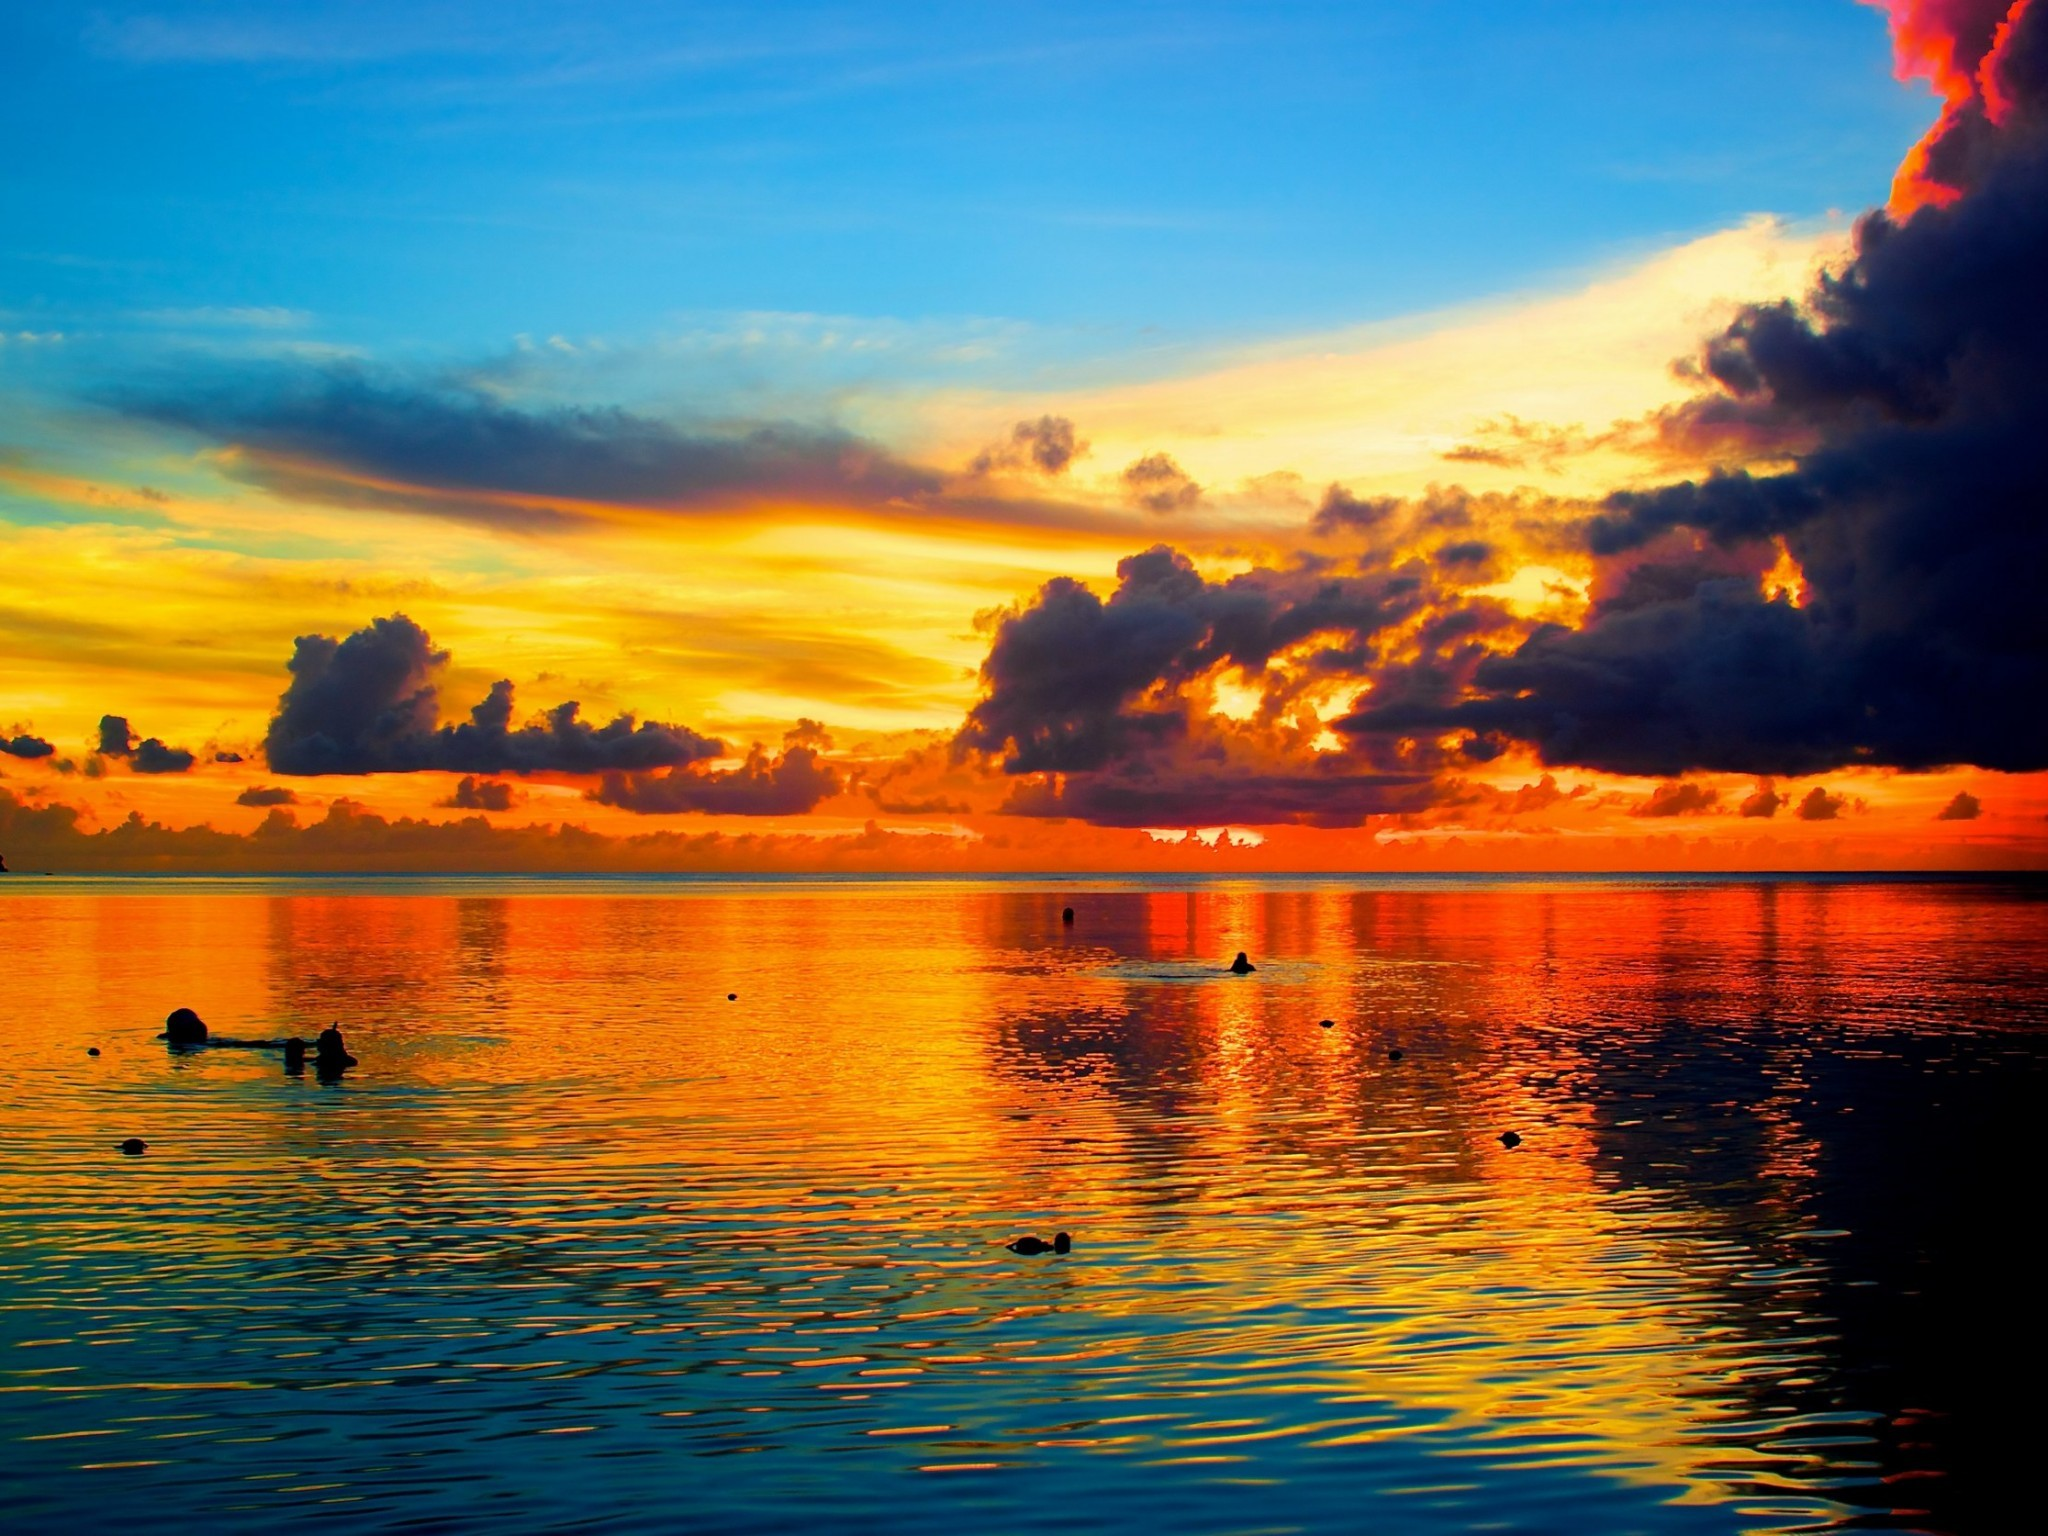 2048x1536 Ocean Sunset Palm Trees | Sea Sunset Palm Tree Guam hd Wallpaper